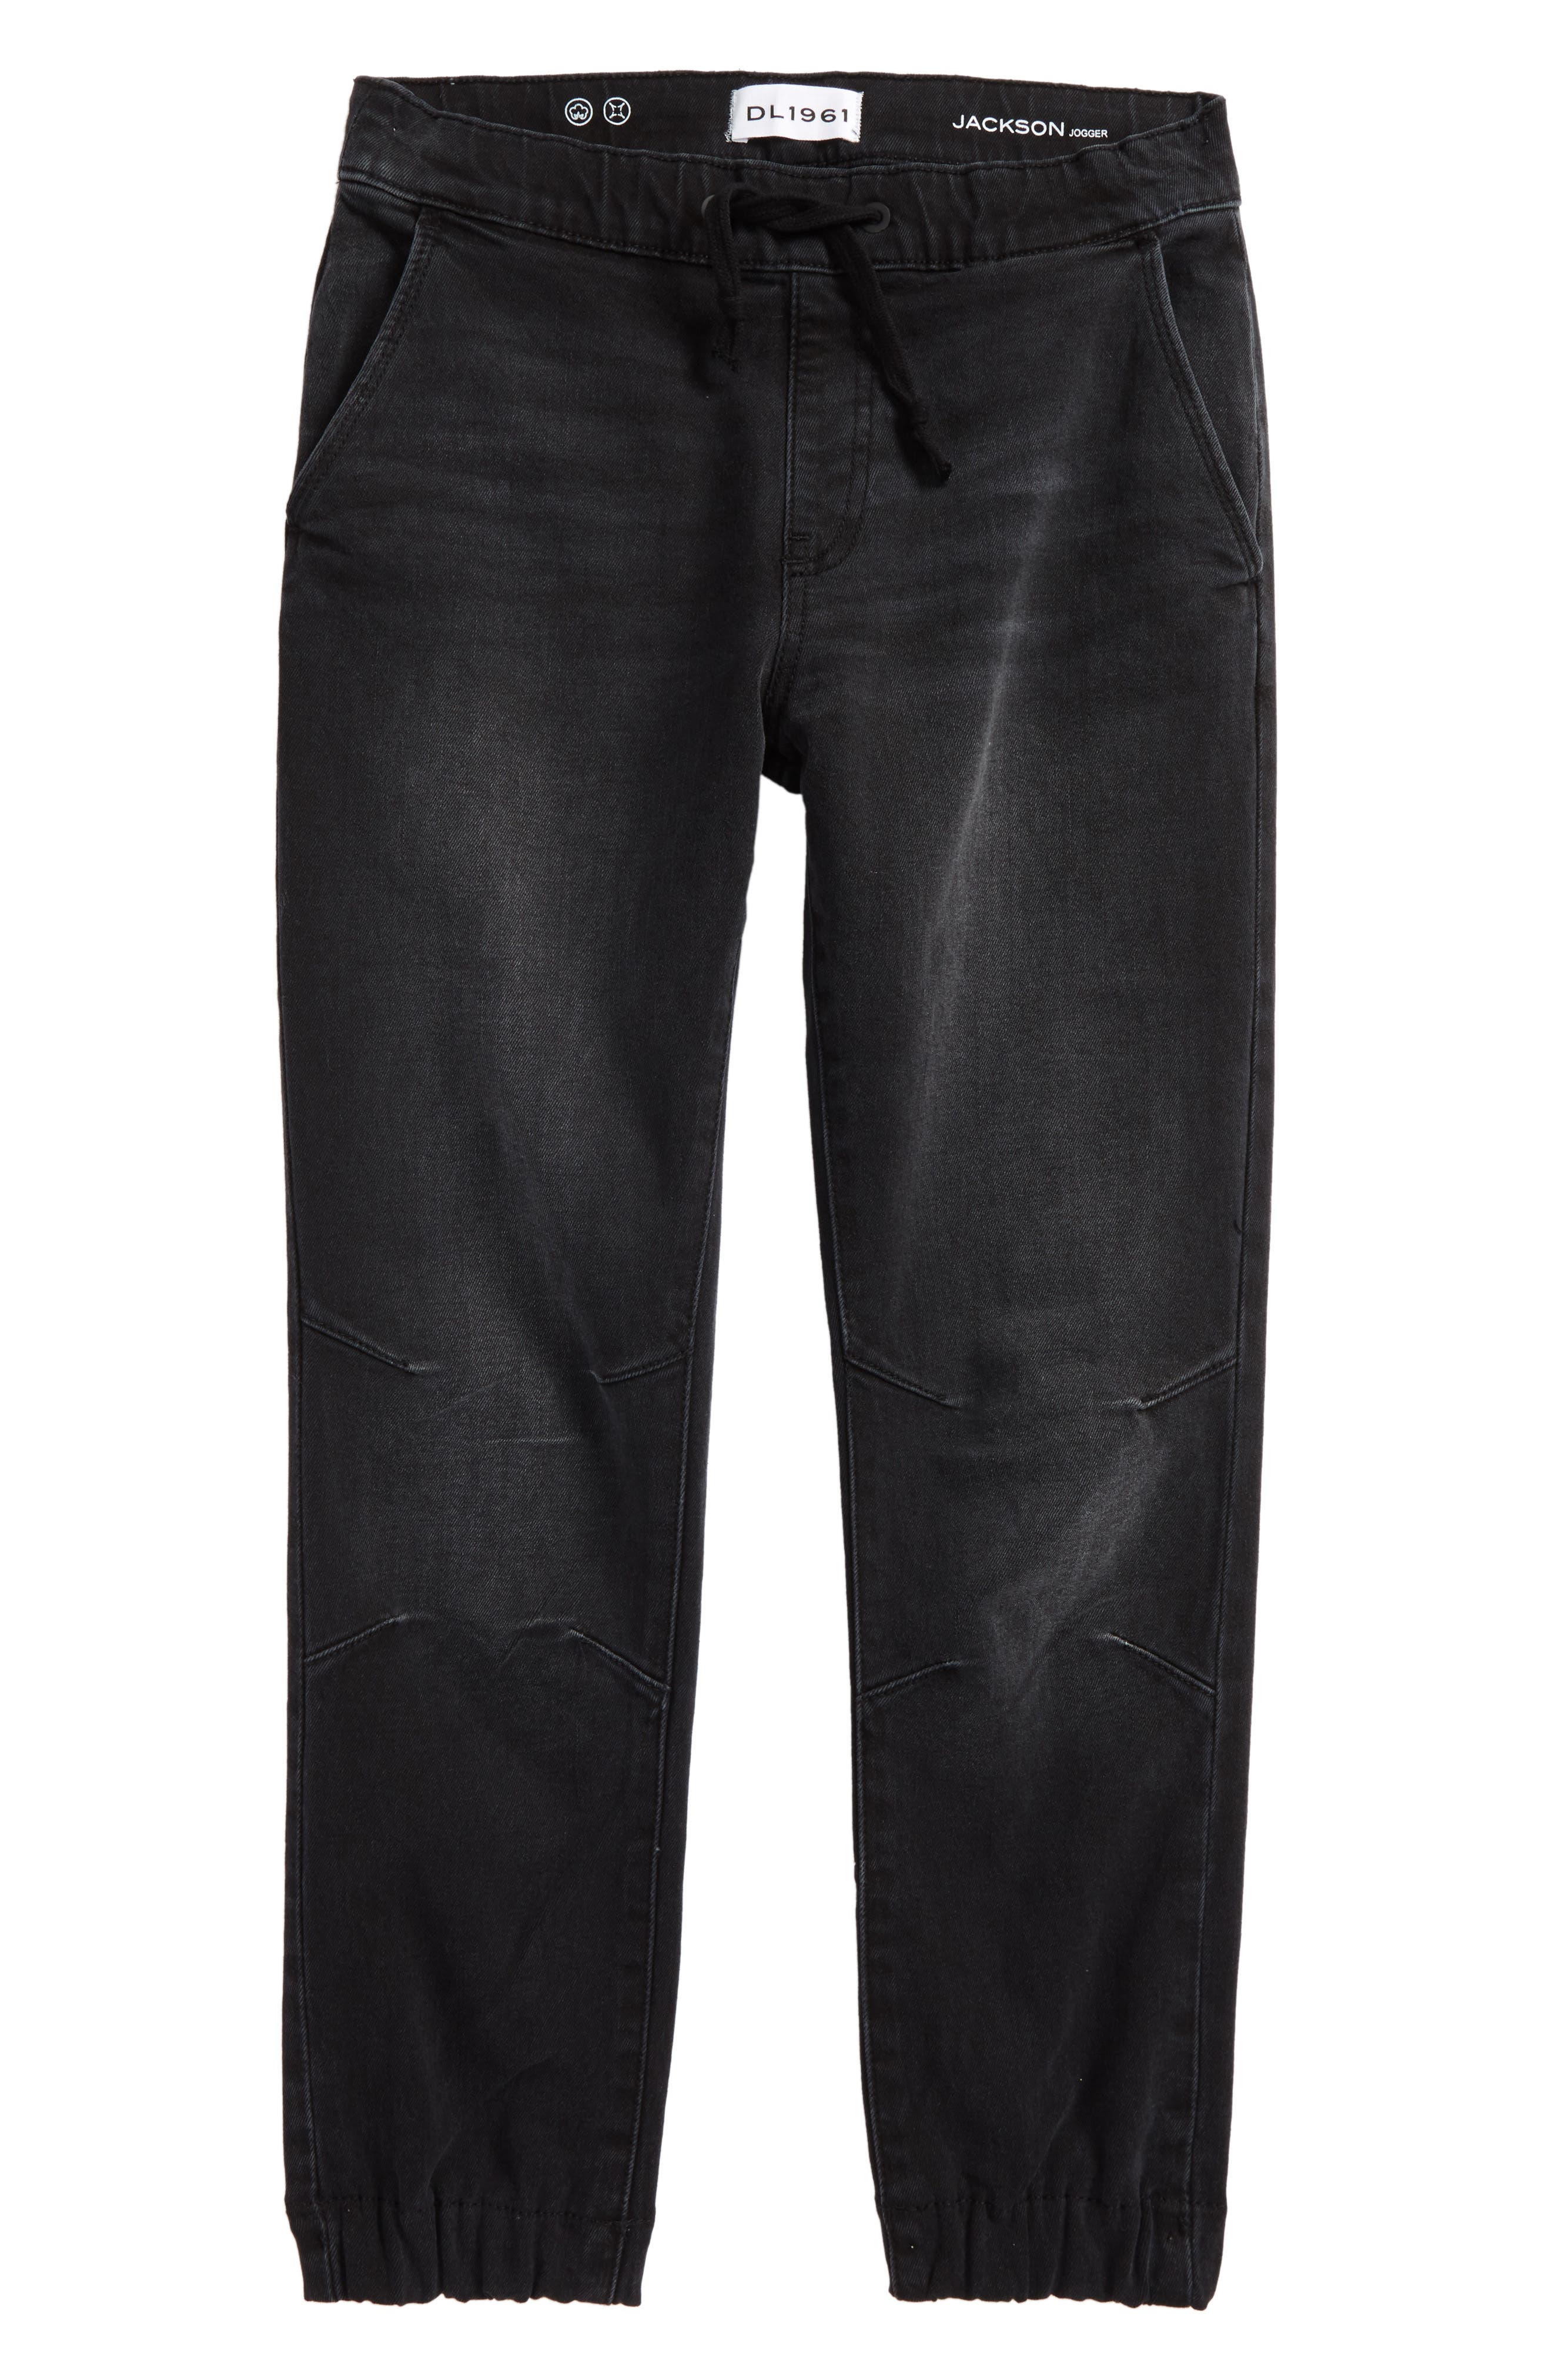 'Jackson' Jogger Pants,                             Alternate thumbnail 2, color,                             020